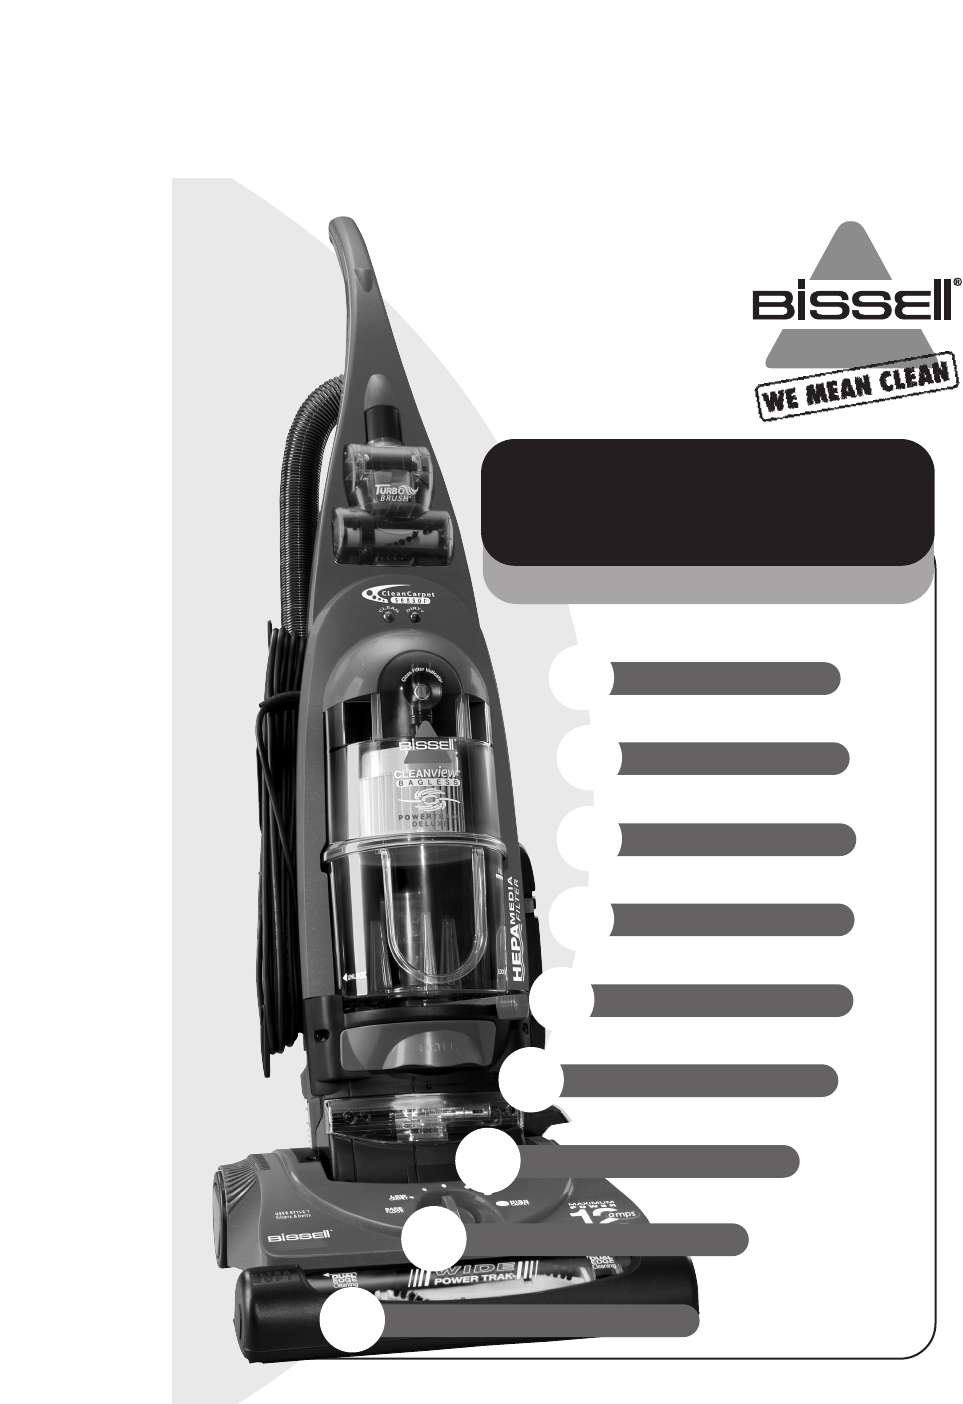 bissell vacuum cleaner 6590 user guide manualsonline com rh homeappliance manualsonline com bissell owners manual for 66e2-1 bissell owners manual for 66e2-1